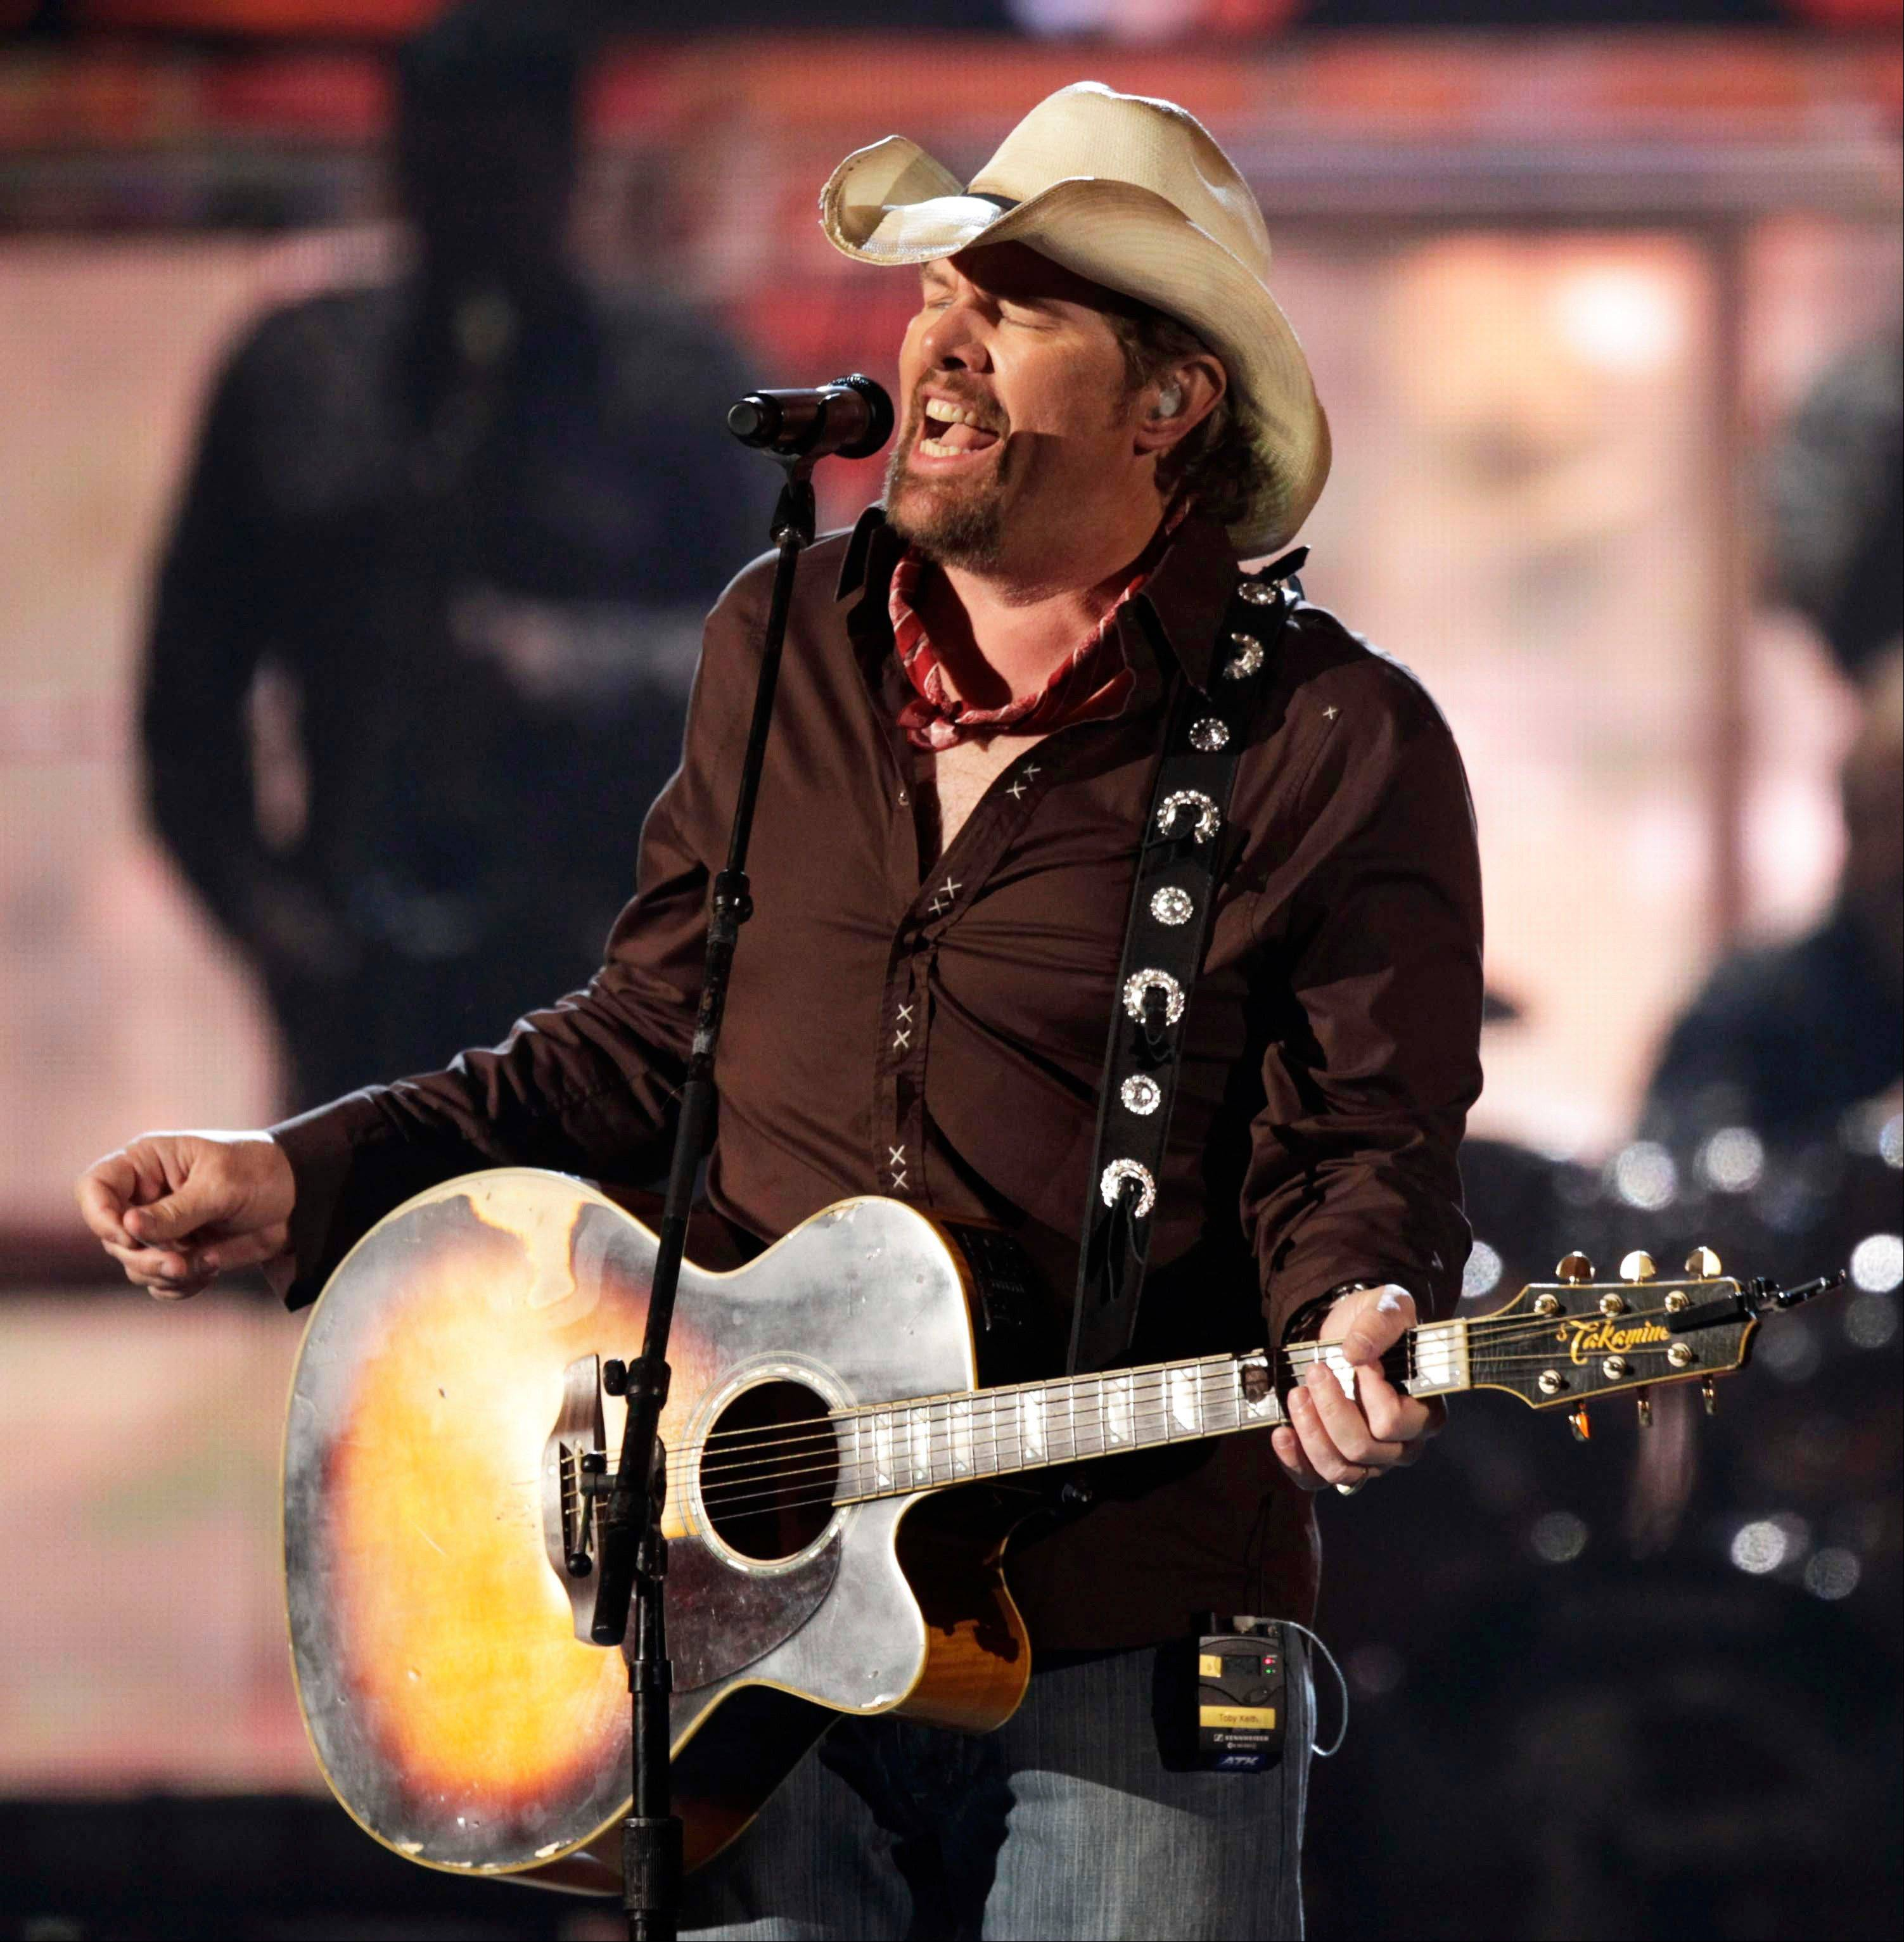 In this April 3, 2011 file photo, country singer Toby Keith performs at the 46th Annual Academy of Country Music Awards in Las Vegas. Tickets for Keith's performance at the state fair go on sale on Feb. 9.